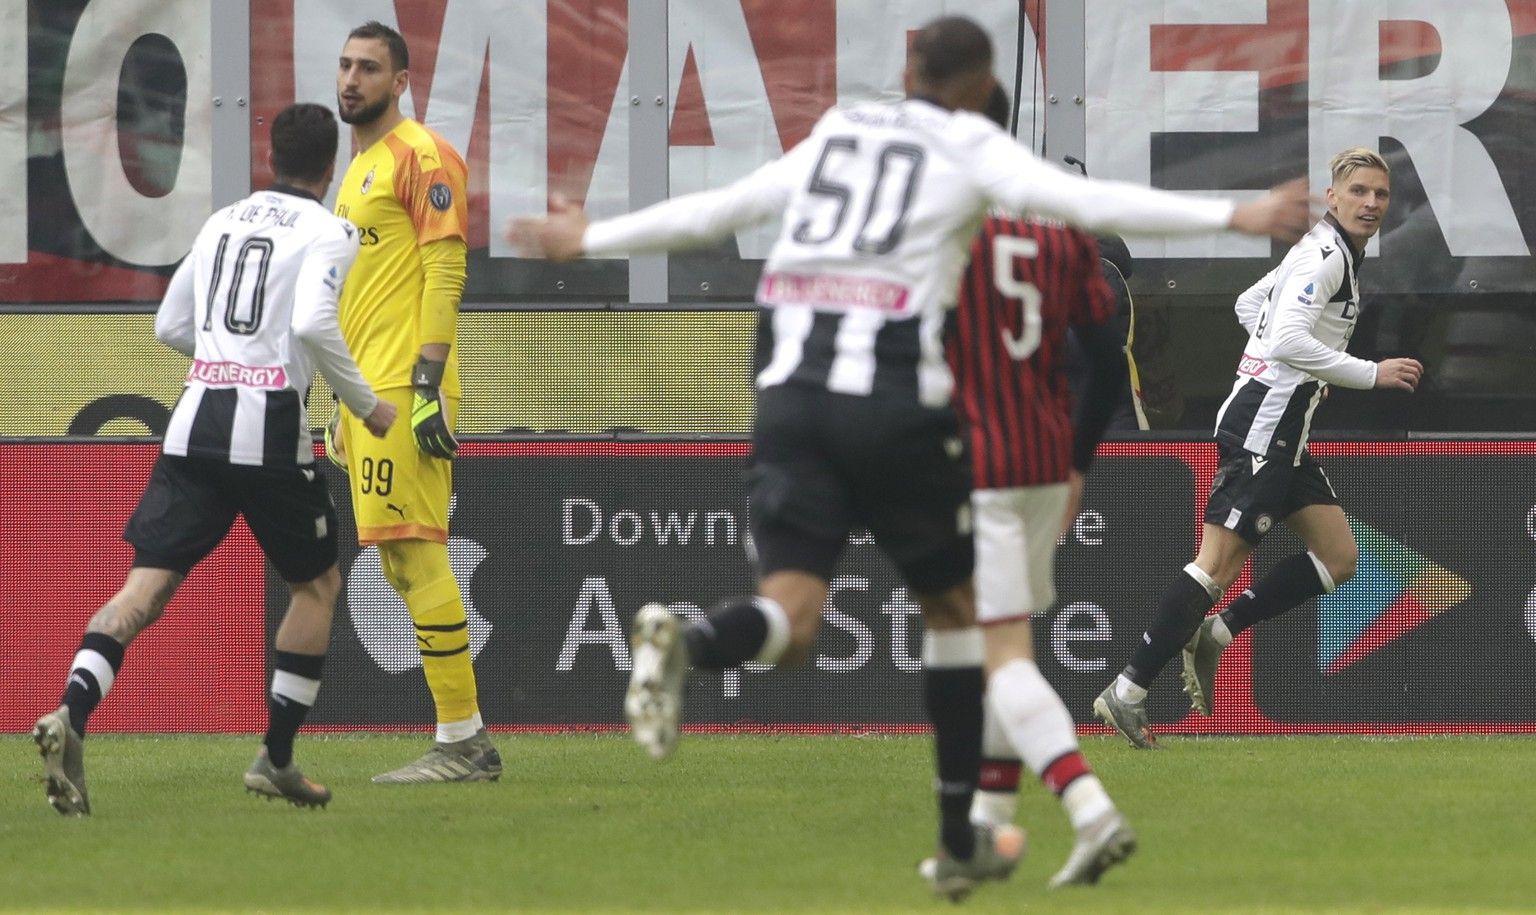 Udinese's Jens Stryger Larsen celebrates after scoring his side's opening goal during a Serie A soccer match between AC Milan and Udinese, at the San Siro stadium in Milan, Italy, Sunday, Jan. 19, 2020. At left is AC Milan's goalkeeper Gianluigi Donnarumma.(AP Photo/Luca Bruno)